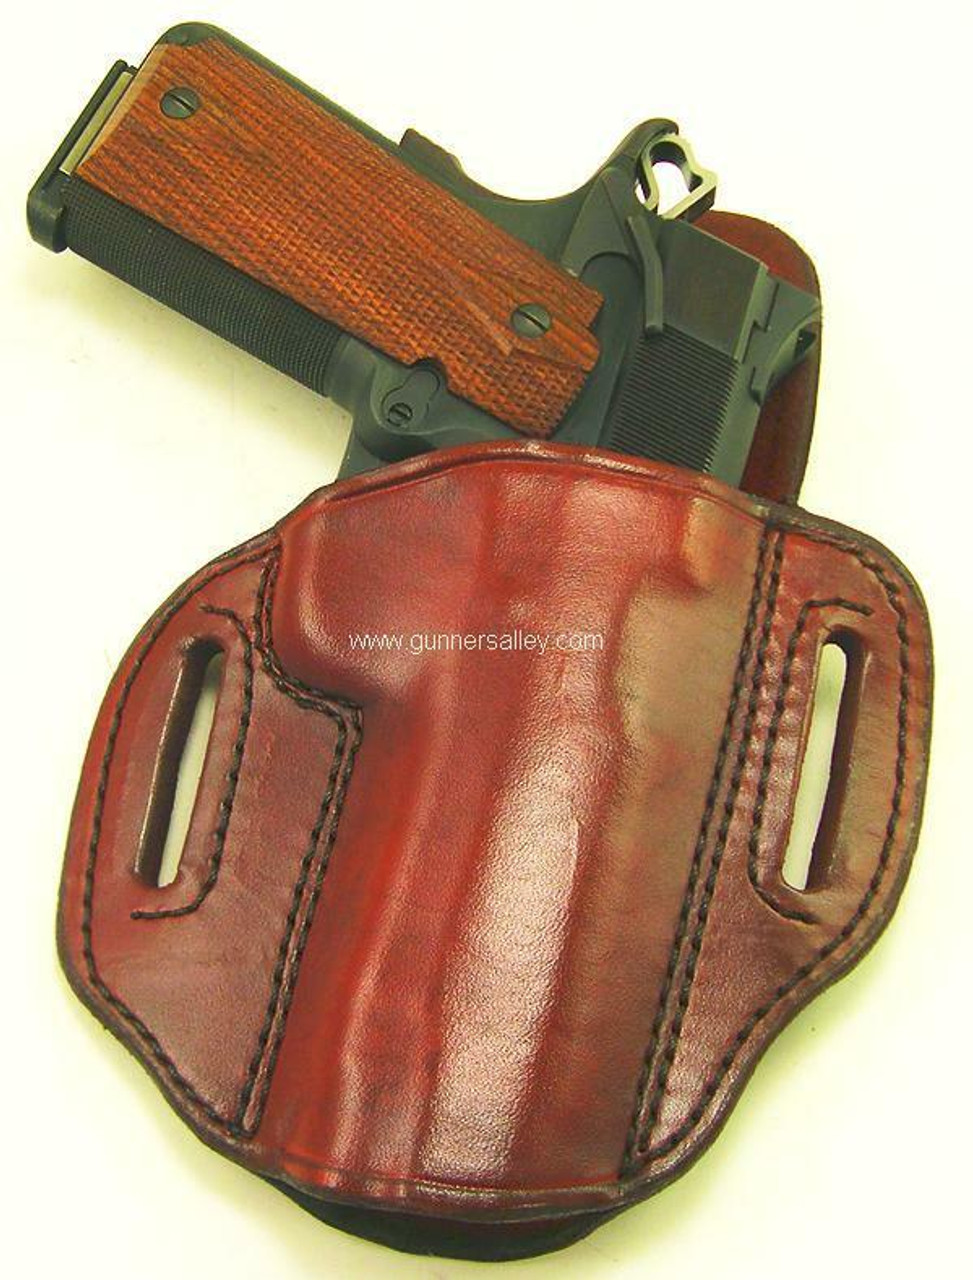 Shown with a 1911 Commander (4.25 inch barrel) - Saddle Brown - Right Hand